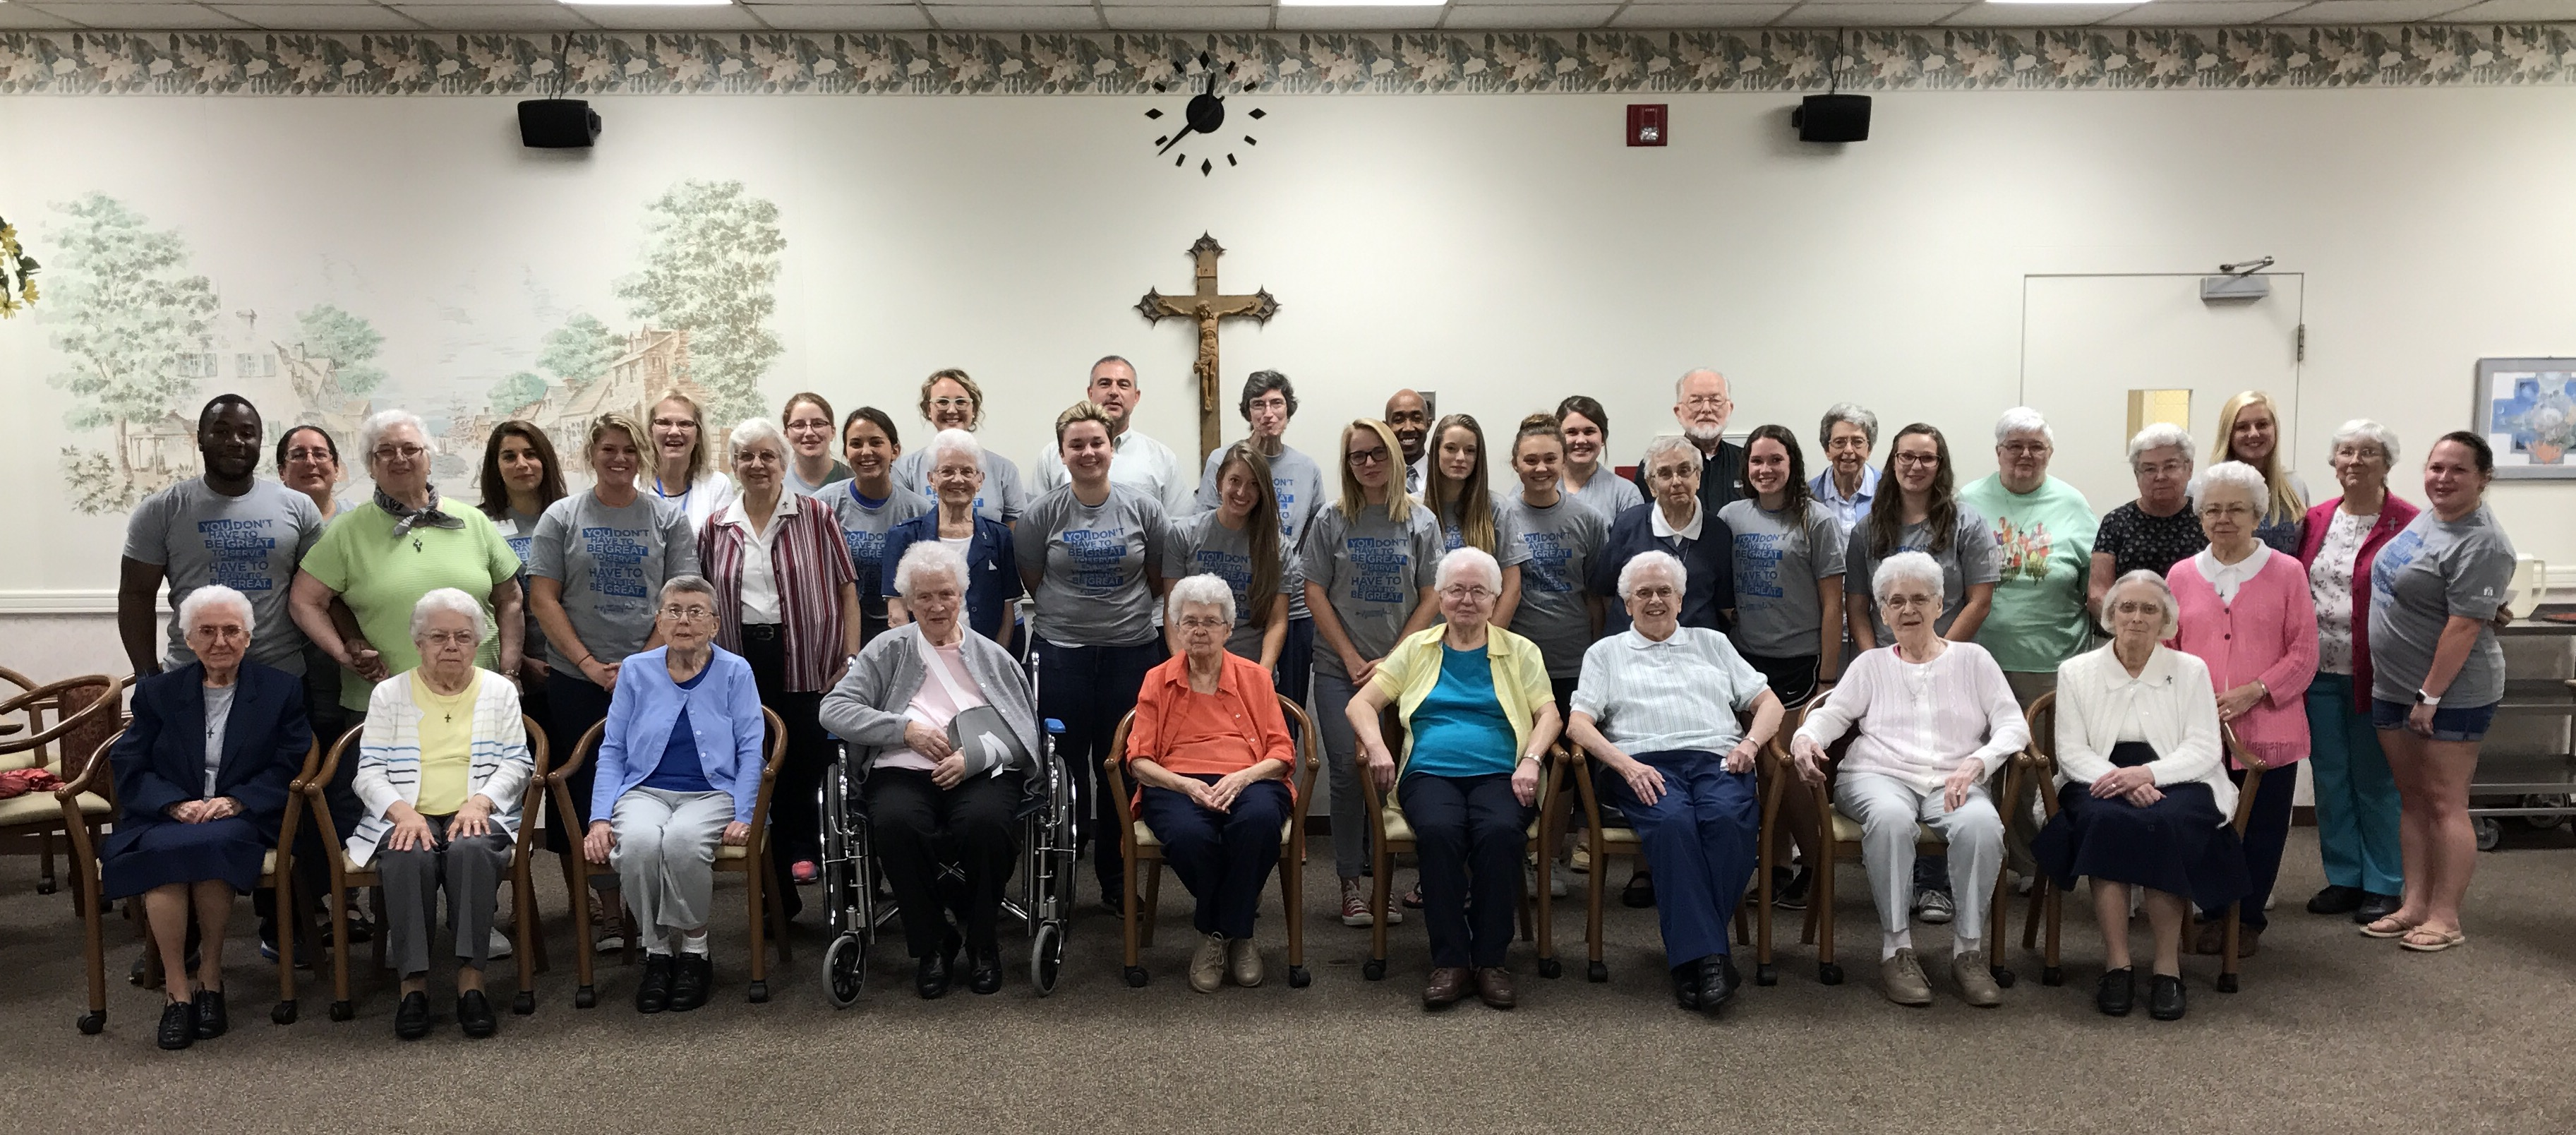 Image of Student Leader Retreat Participants with Sisters of Mercy residents